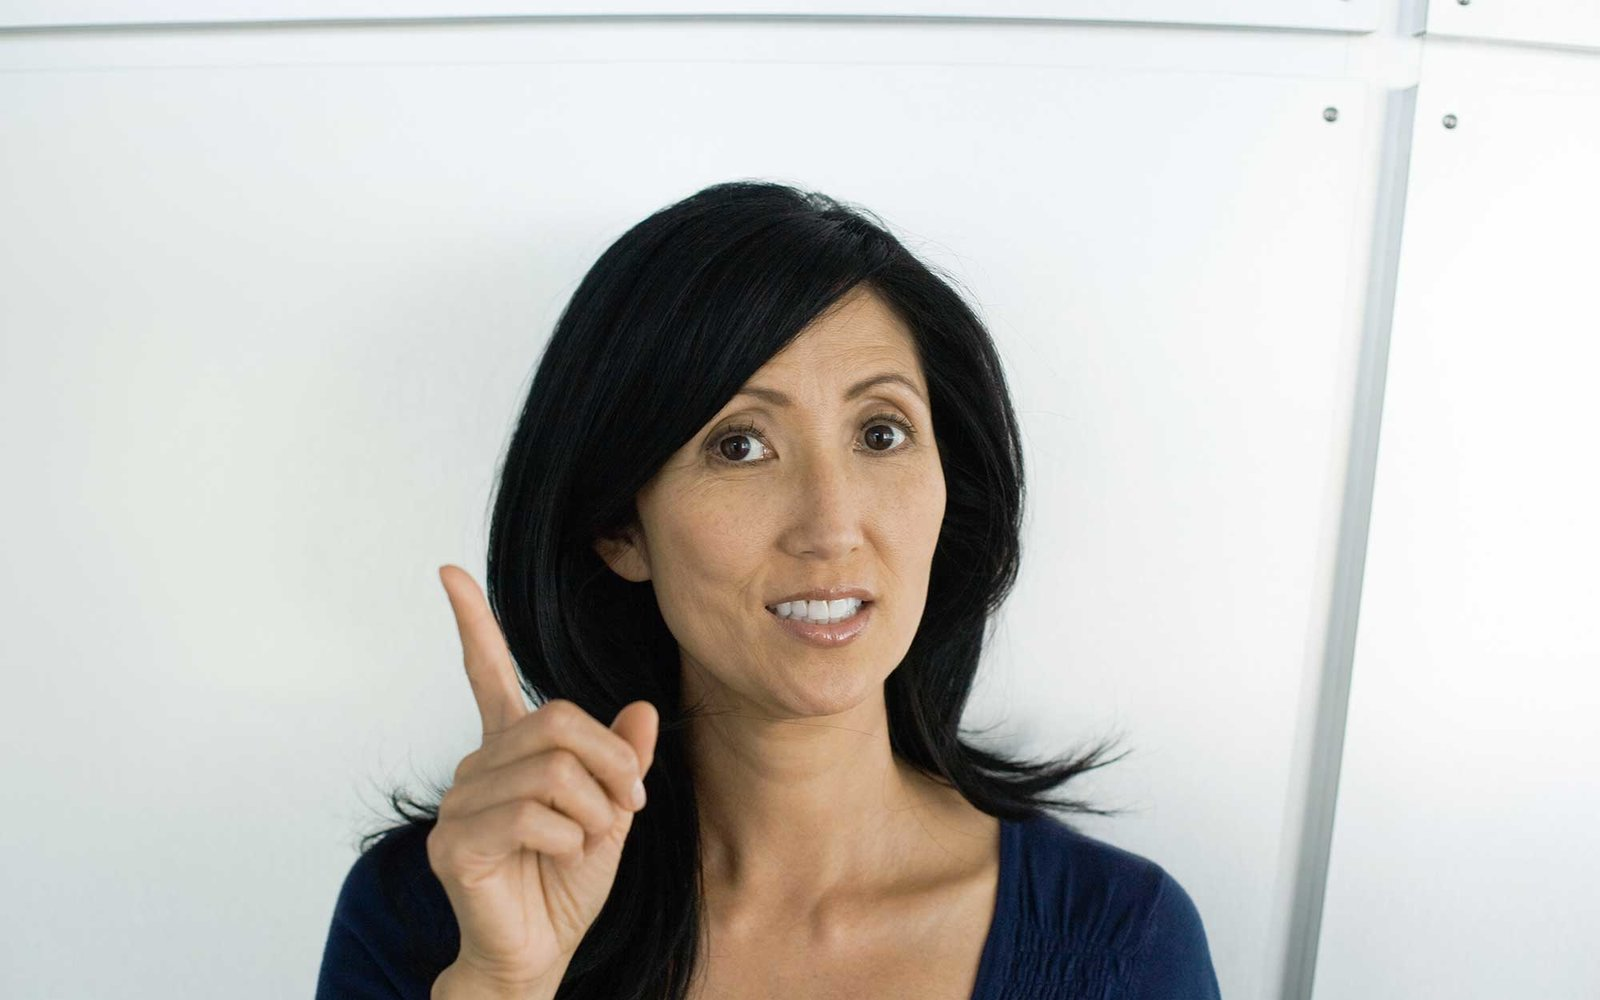 Woman holding up finger, looking at camera